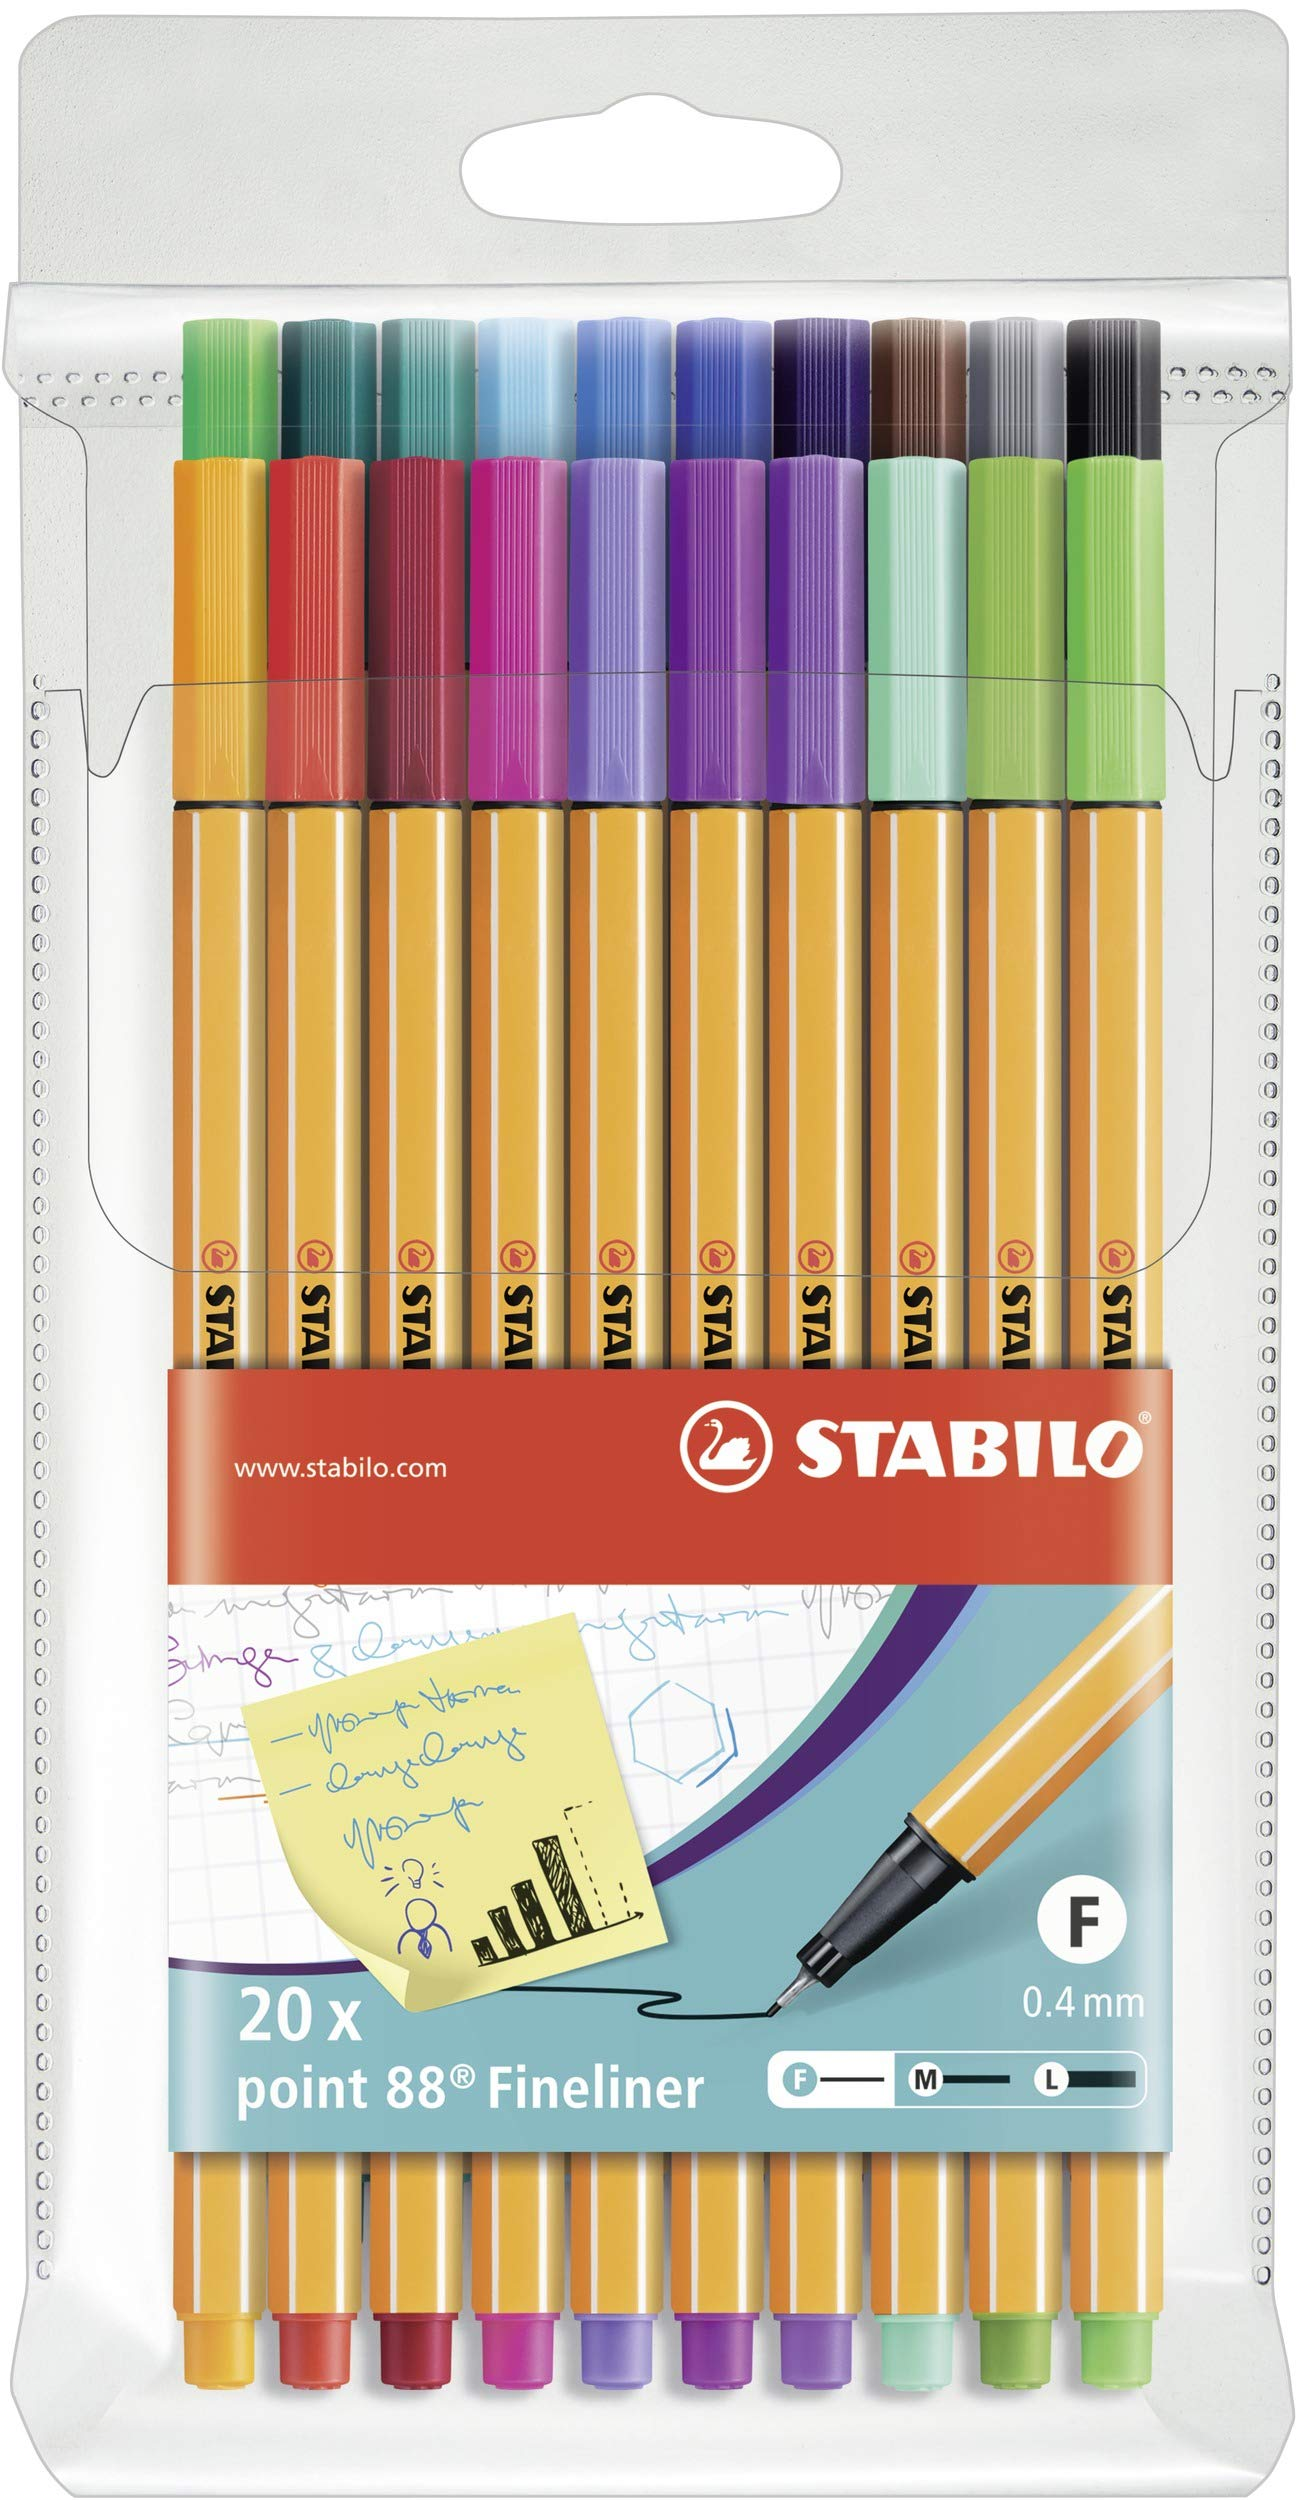 STABILO AZN8820-3 Point 88 Fineliner Wallet of 20 Assorted Colours